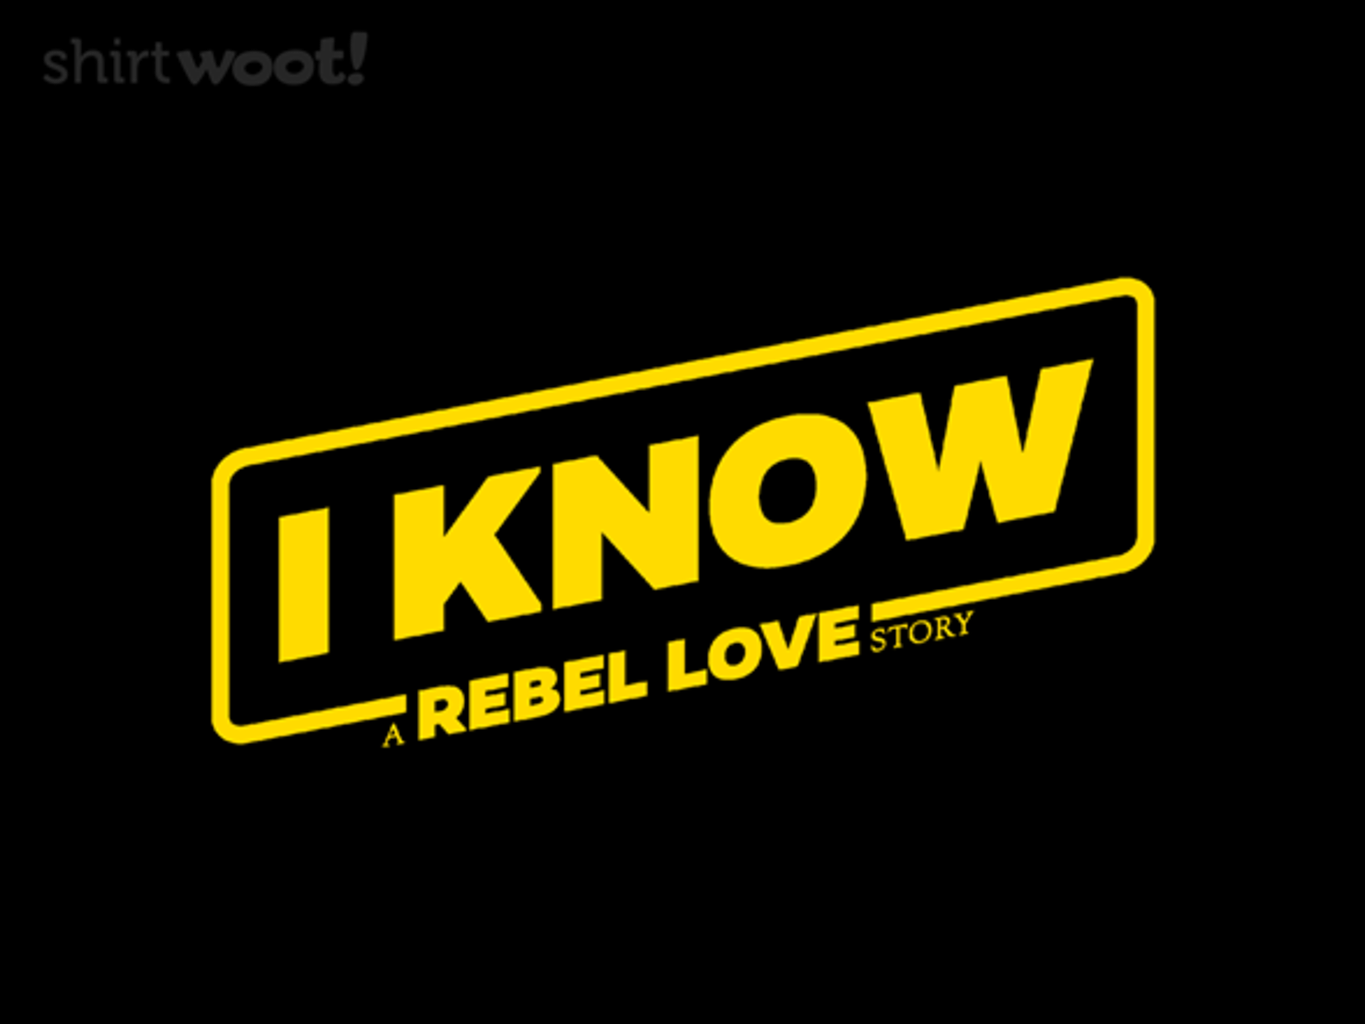 Woot!: I Know - $15.00 + Free shipping